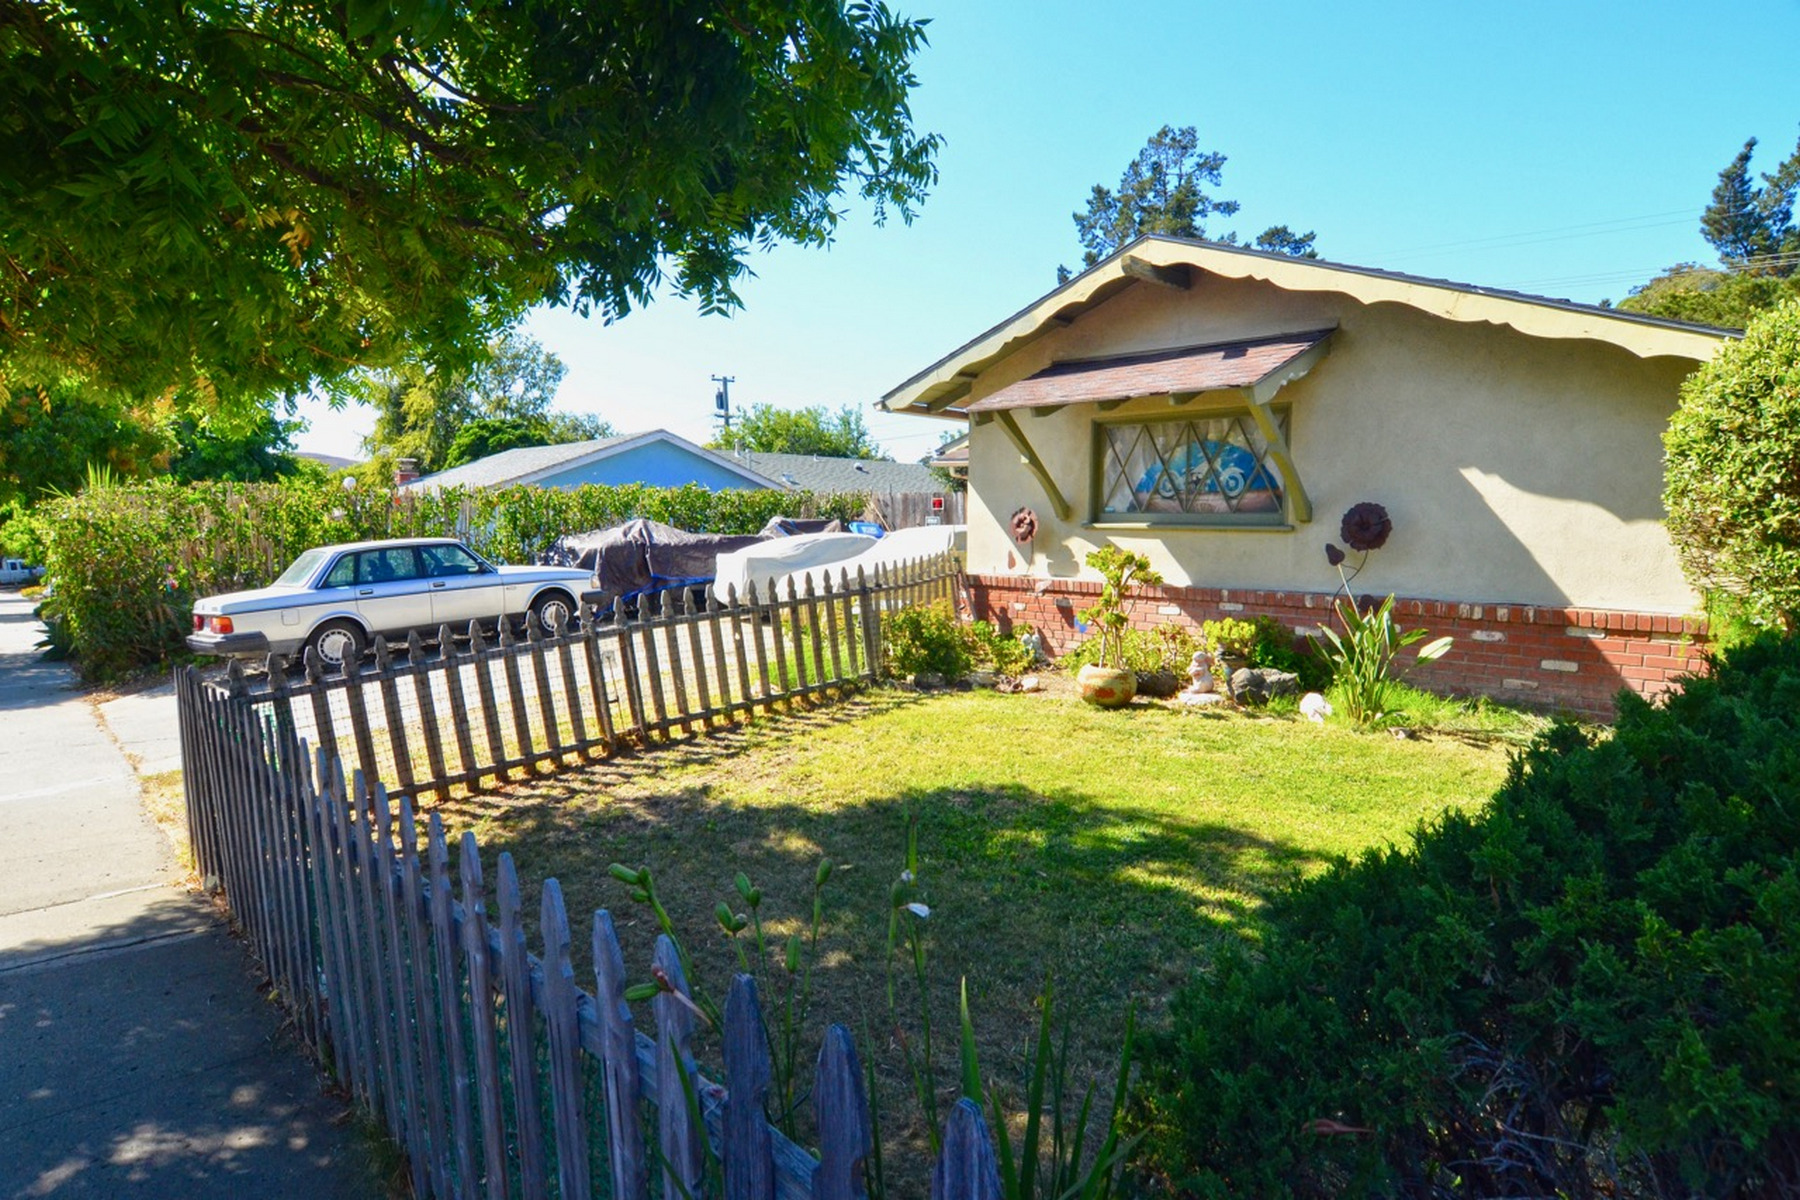 Single Family Homes for Sale at Great Location in the Southwood Subdivision 1346 Woodside Drive San Luis Obispo, California 93401 United States